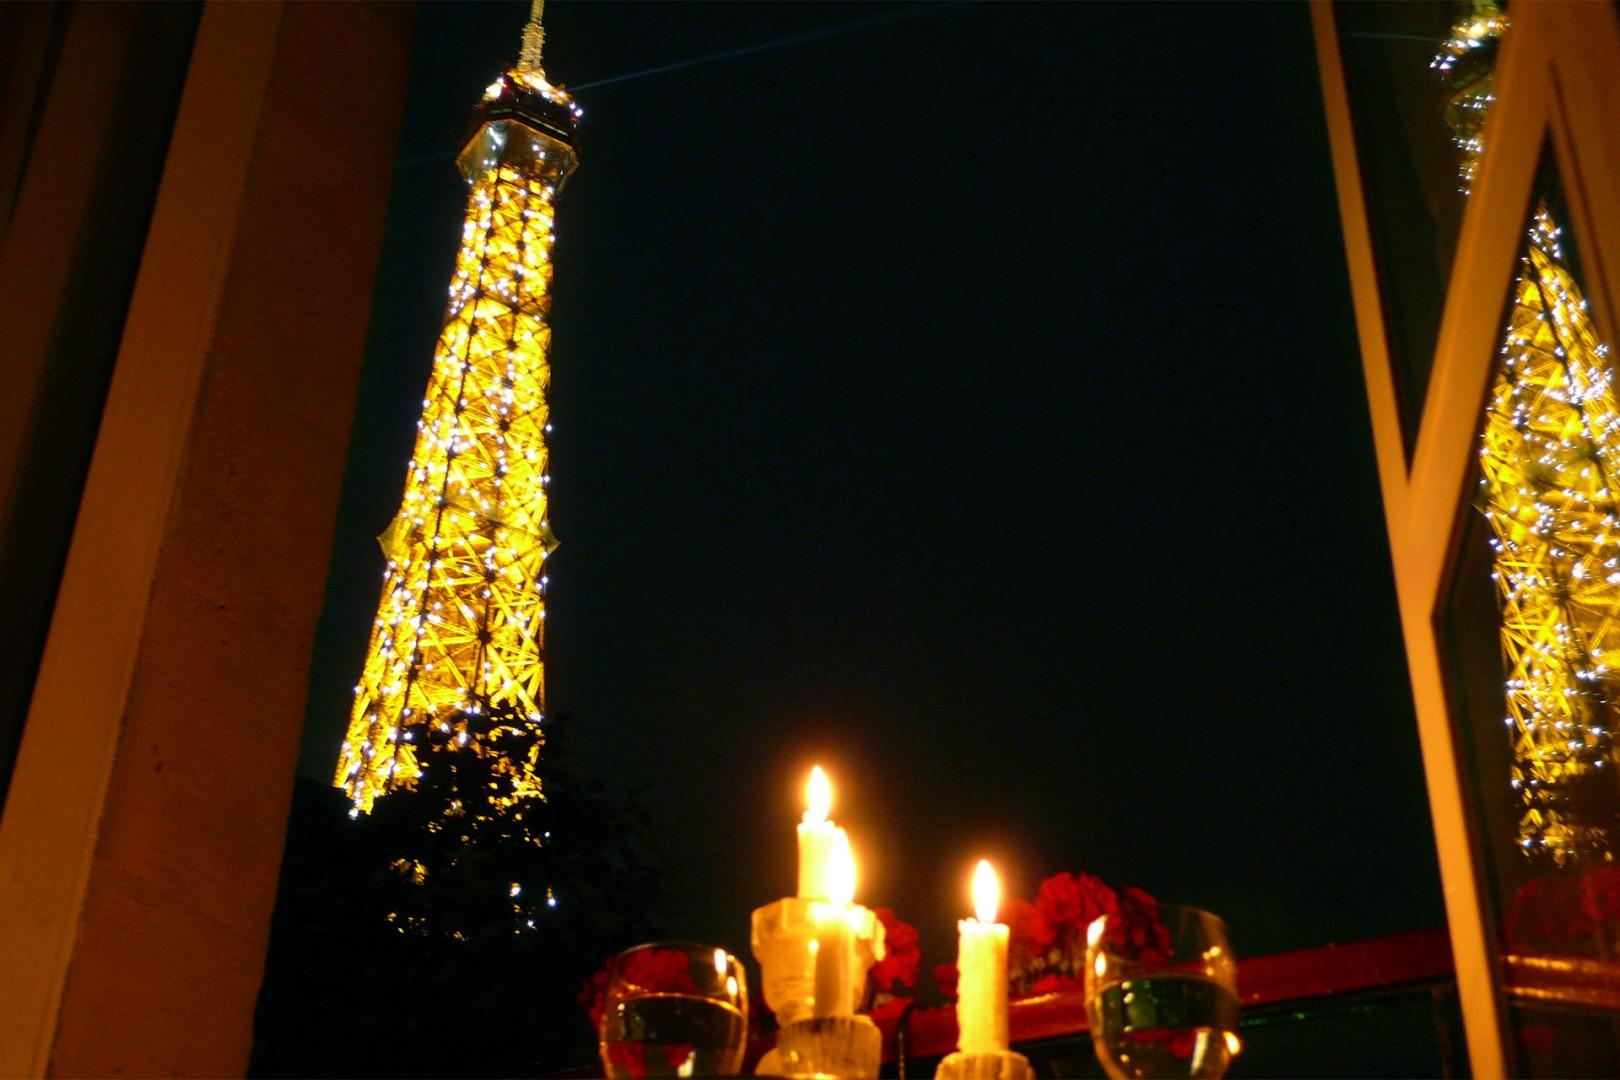 Marvel at the Eiffel Tower lights from your Paris rental!